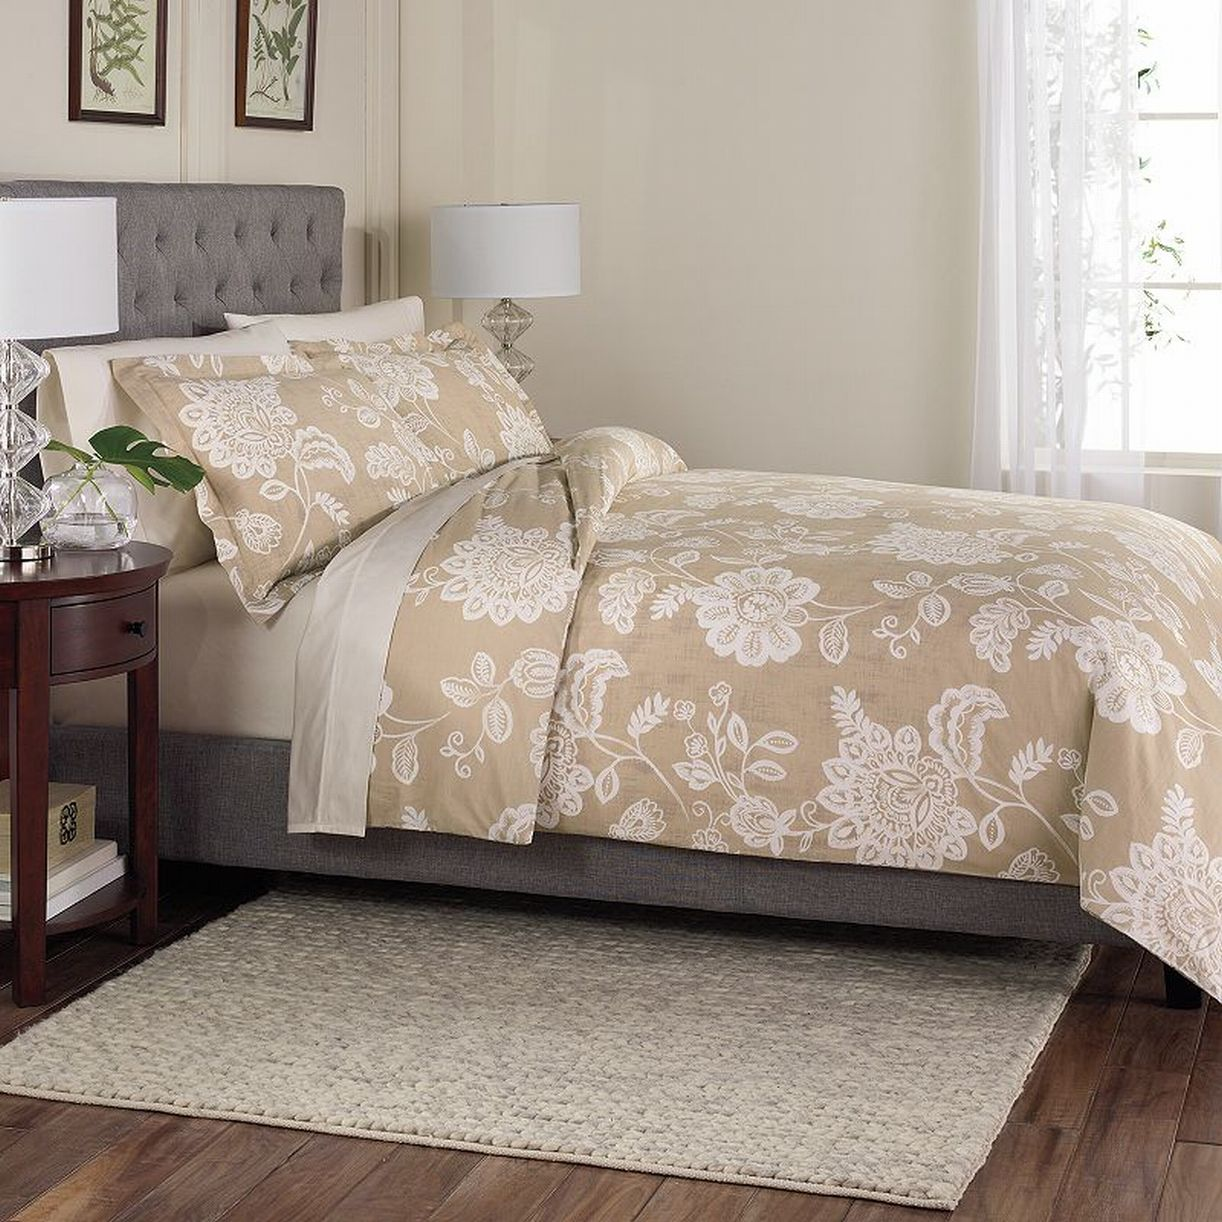 Sonoma Petaluma Tan Floral 3 Pc Cotton Duvet Cover Set Full Queen Size Bed